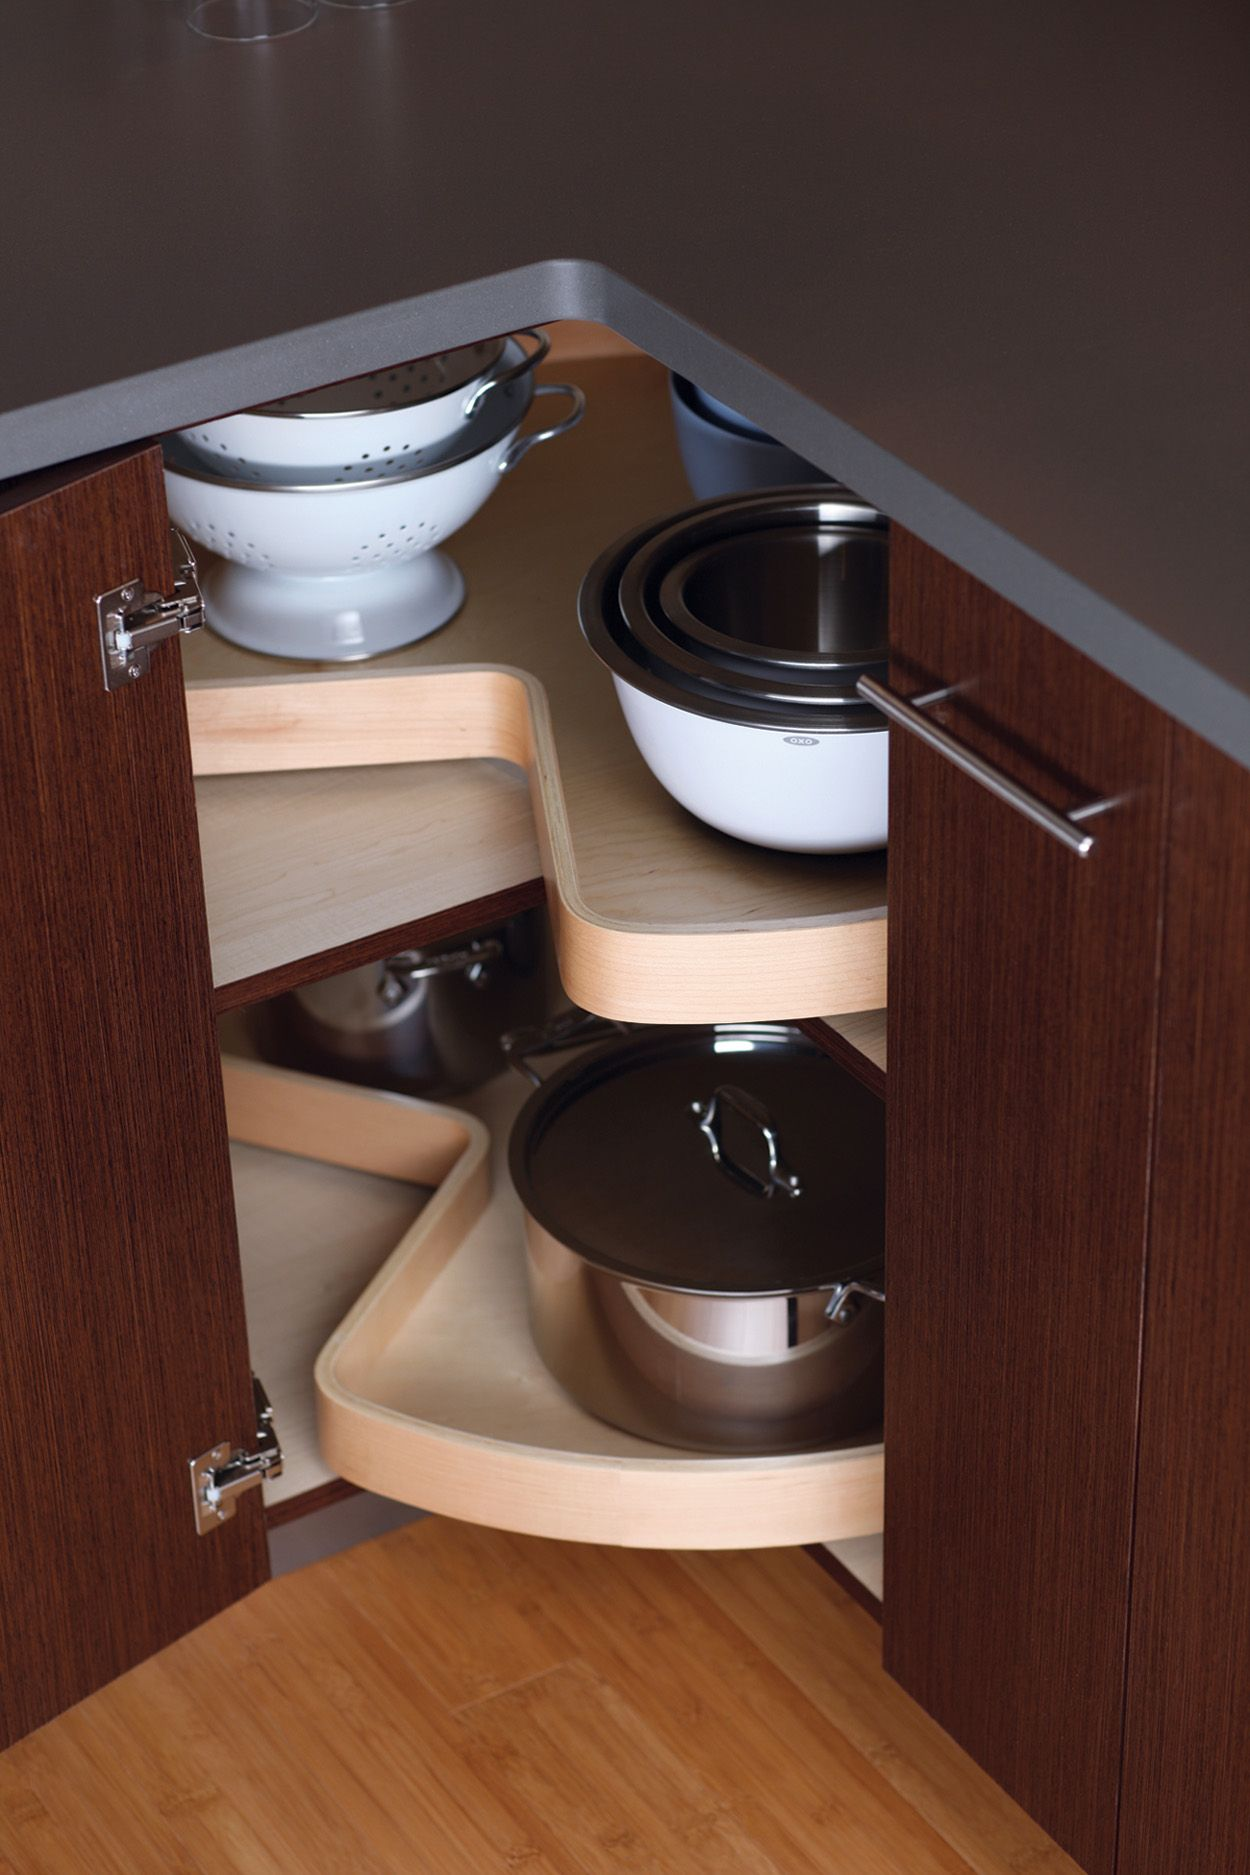 Kitchen Cabinets Lazy Susan Corner Cabinet Our Giant Turntable Shelves Swivel Inside The Cabinet And